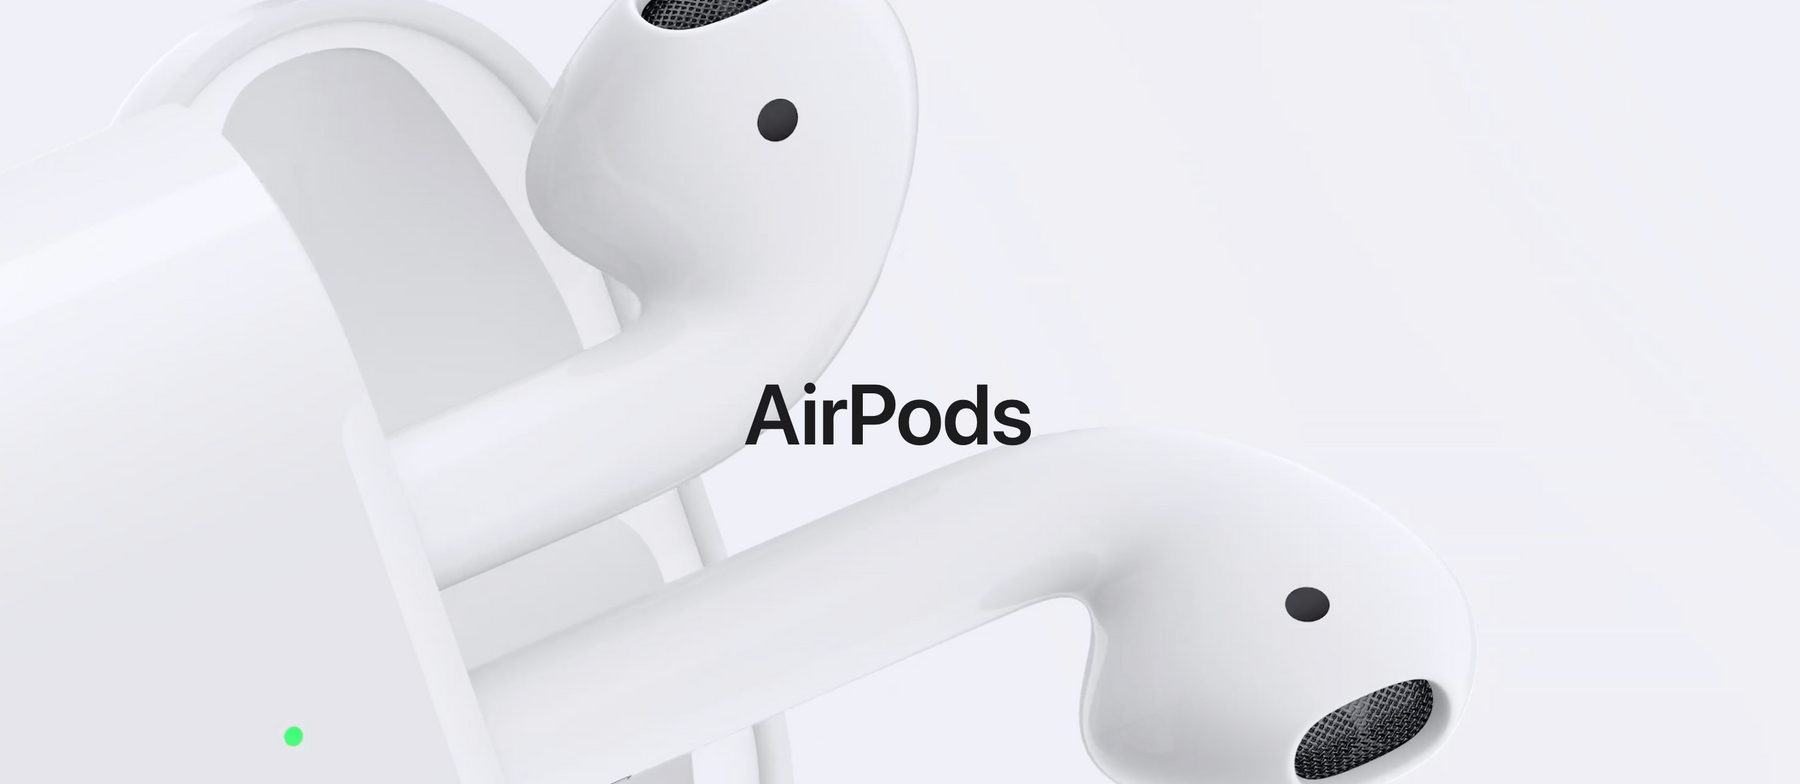 2 of the best AirPods case accessories